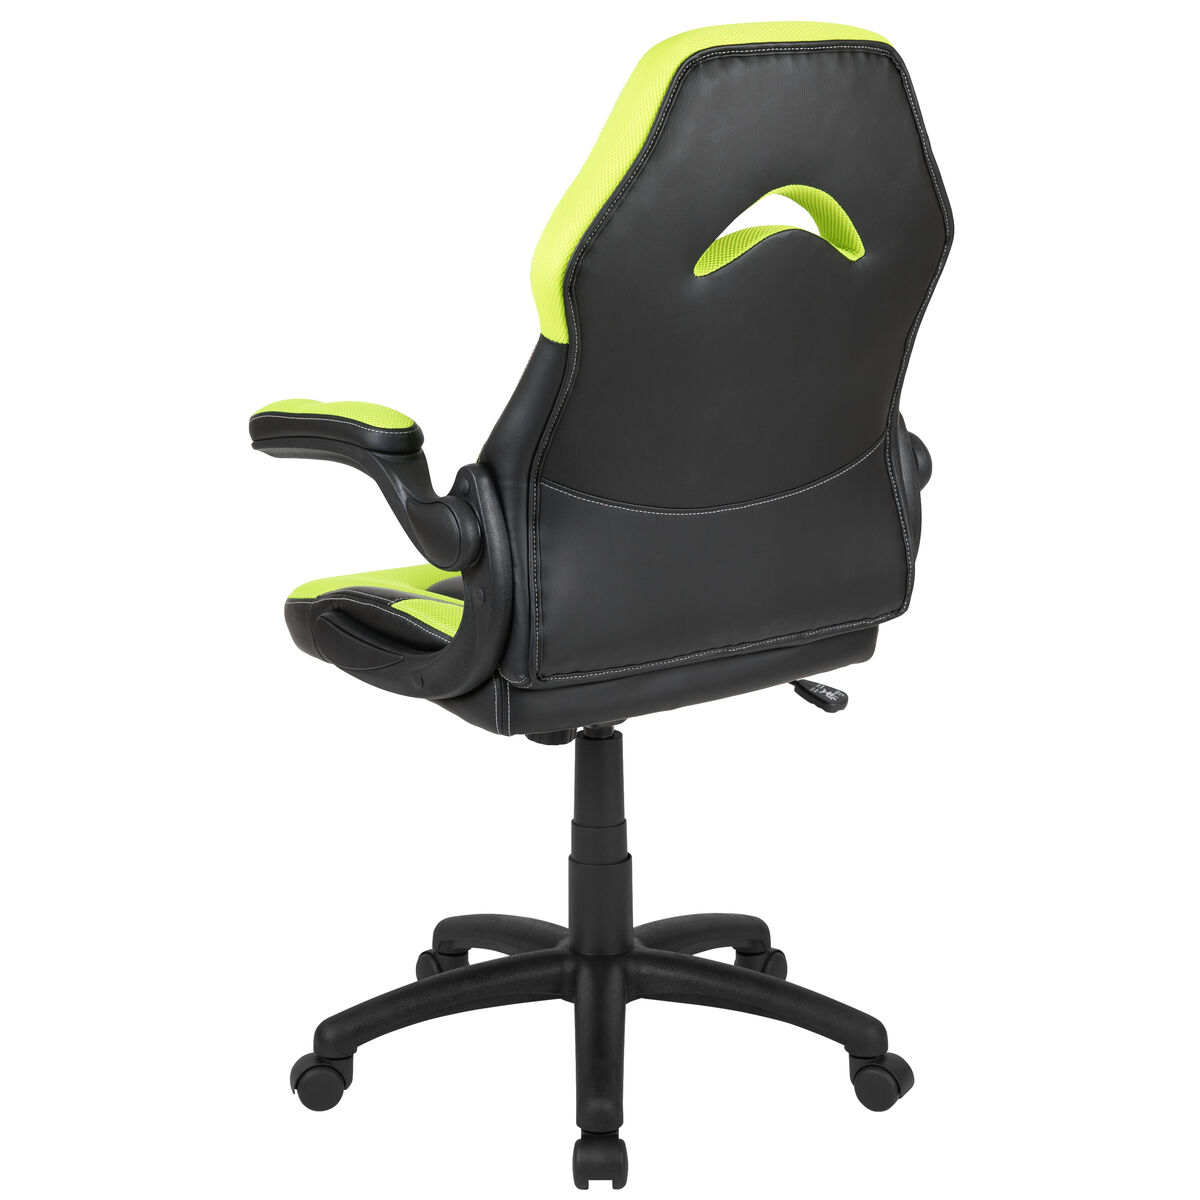 Wondrous X10 Gaming Chair Racing Office Ergonomic Computer Pc Adjustable Swivel Chair With Flip Up Arms Neon Green Black Leathersoft Ocoug Best Dining Table And Chair Ideas Images Ocougorg